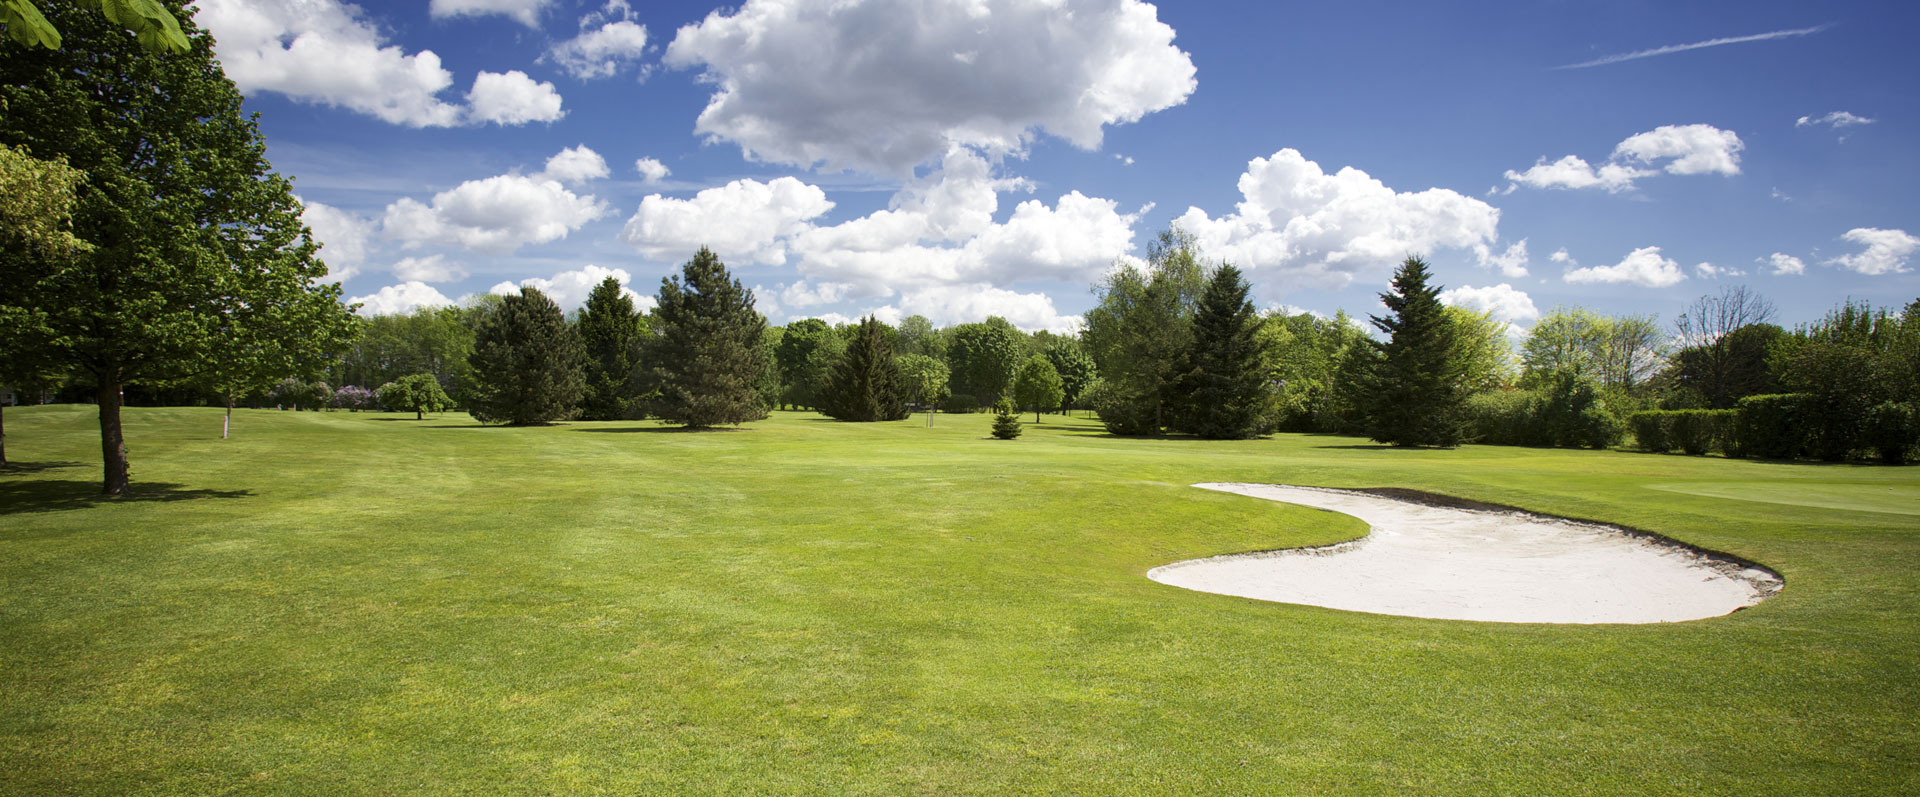 Golf in Richland, Washington